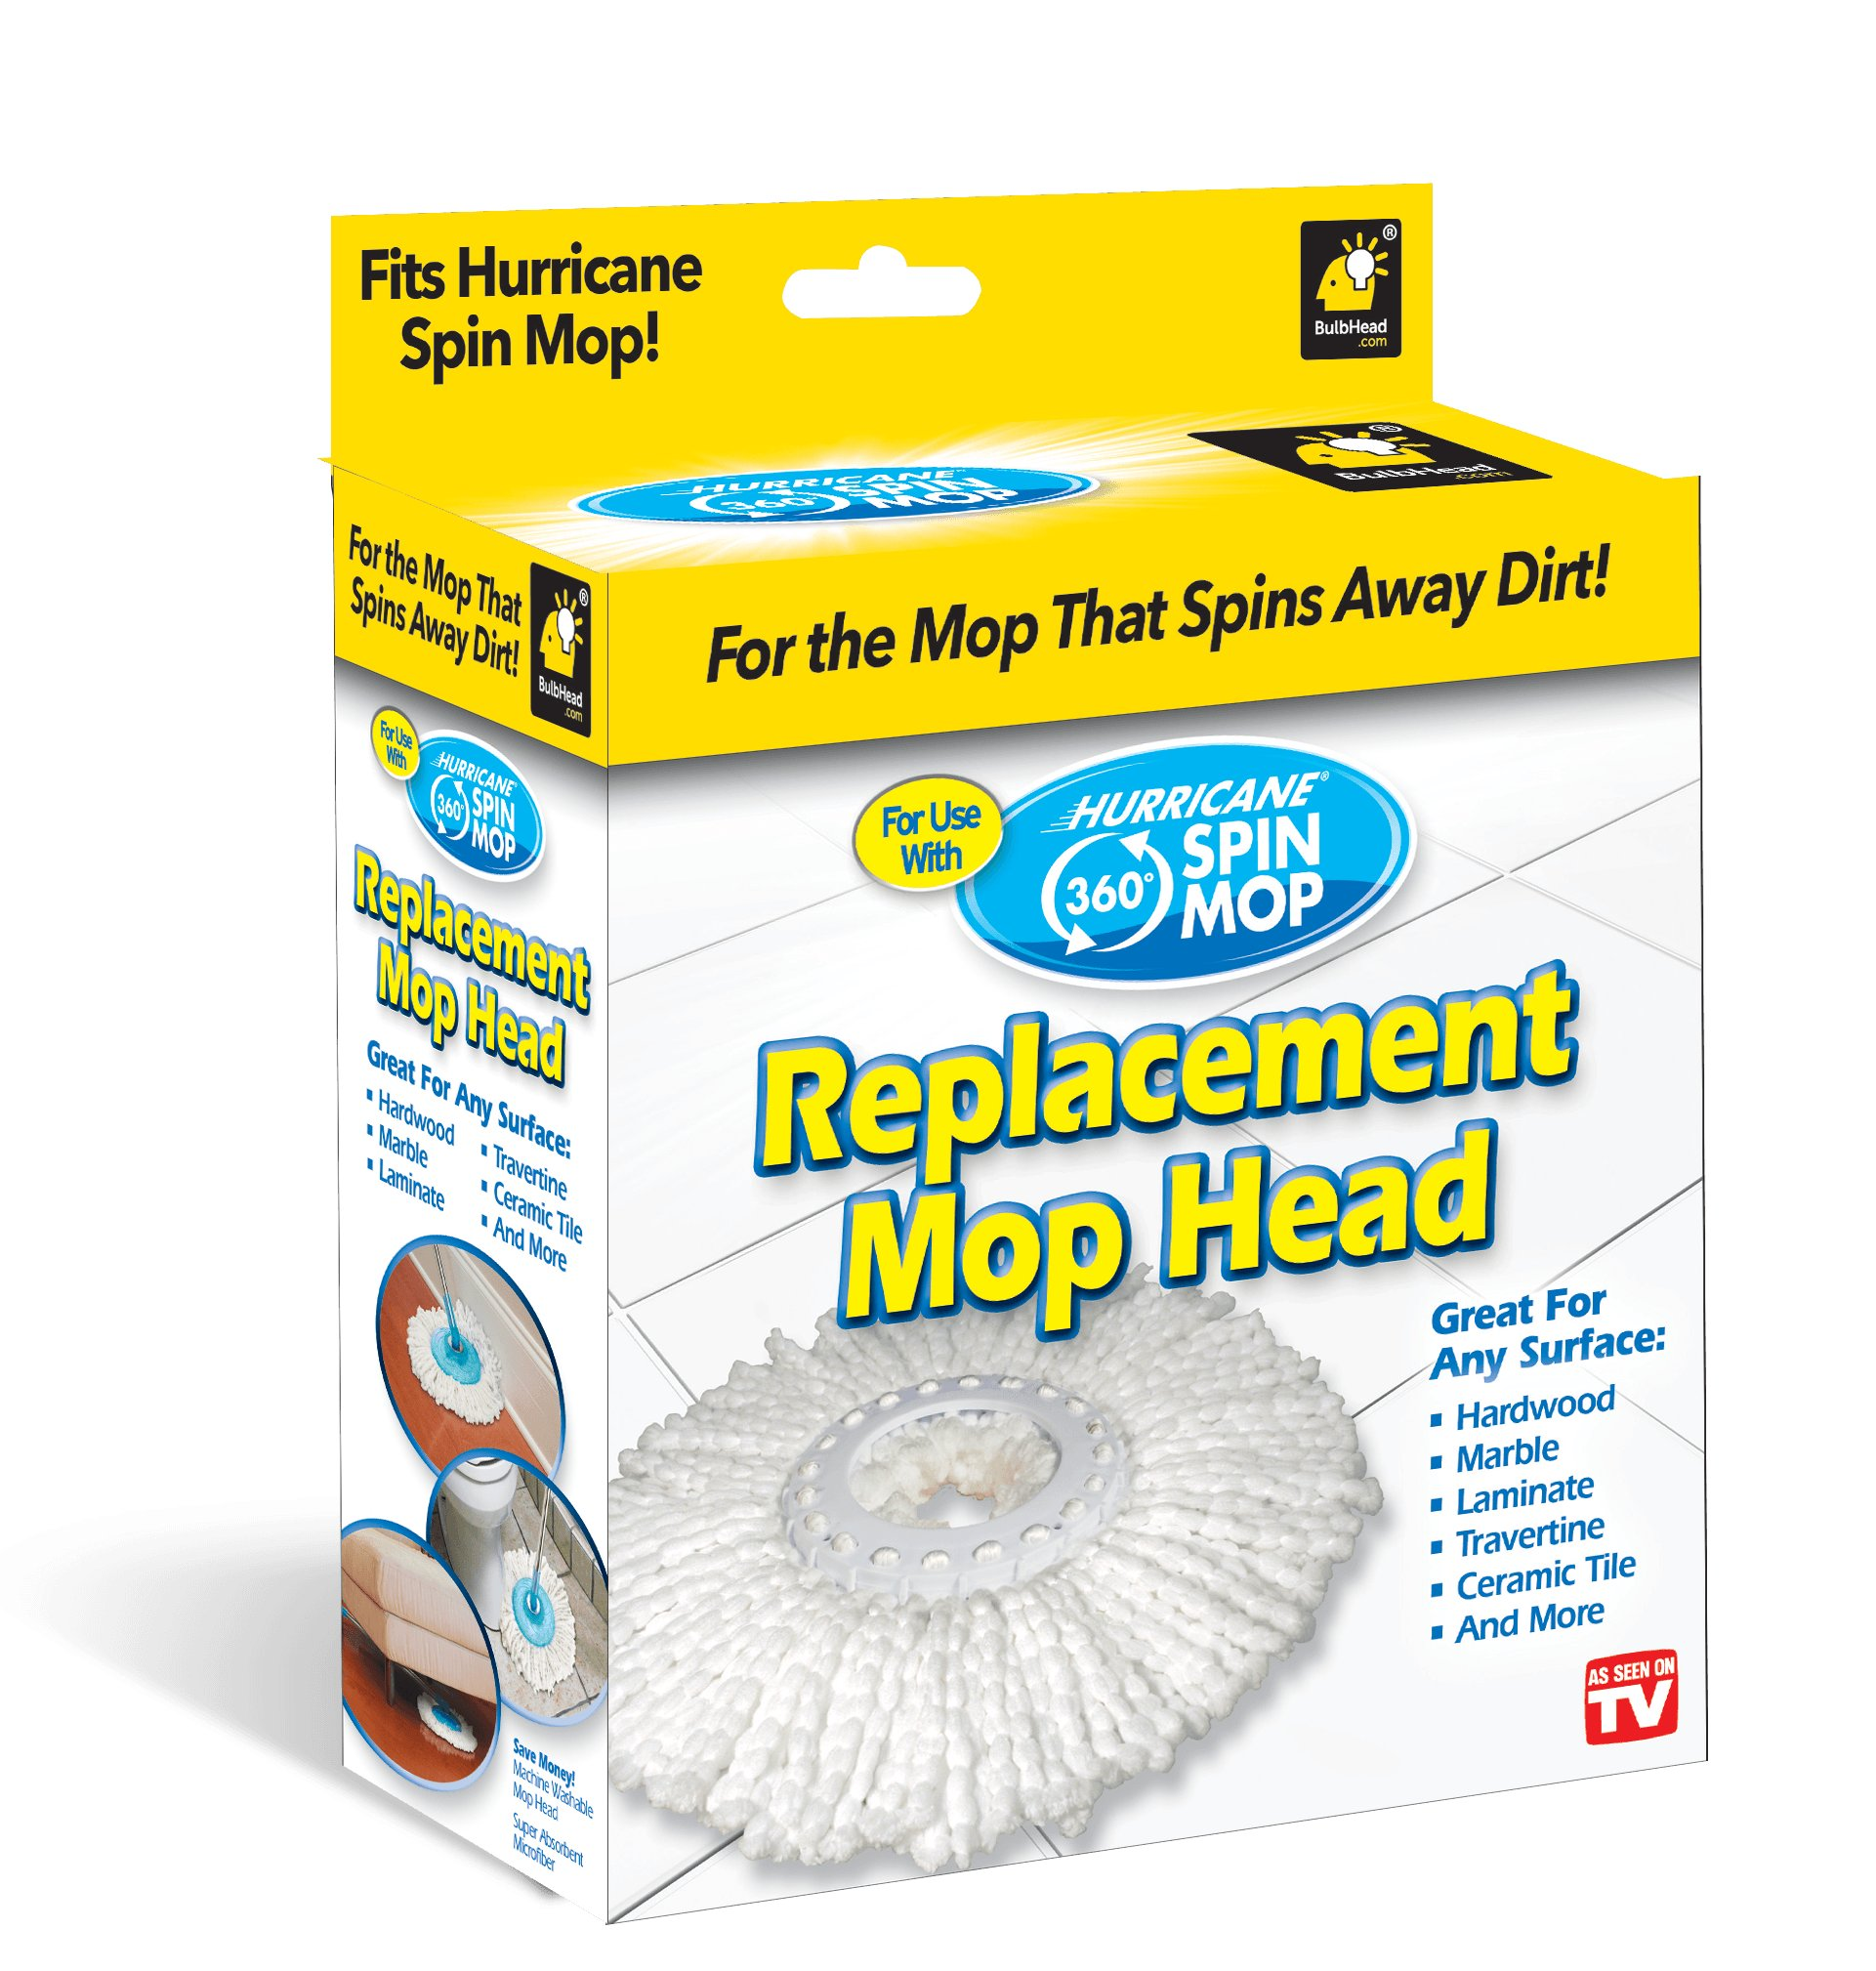 Hurricane Spin Mop Replacement Mop Head by BulbHead